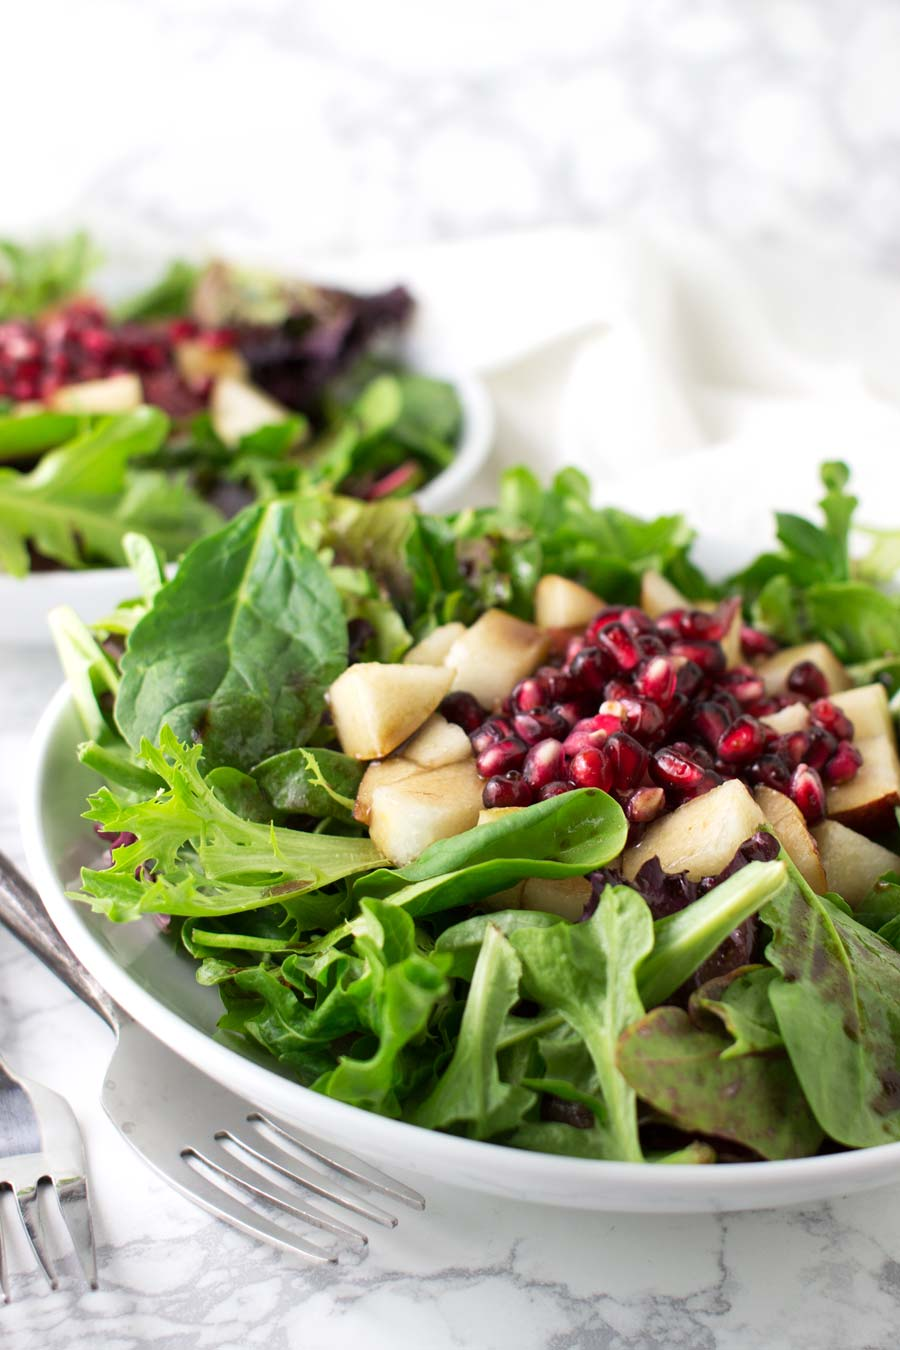 Asian Pear Salad recipe from acleanplate.com #aip #paleo #glutenfree